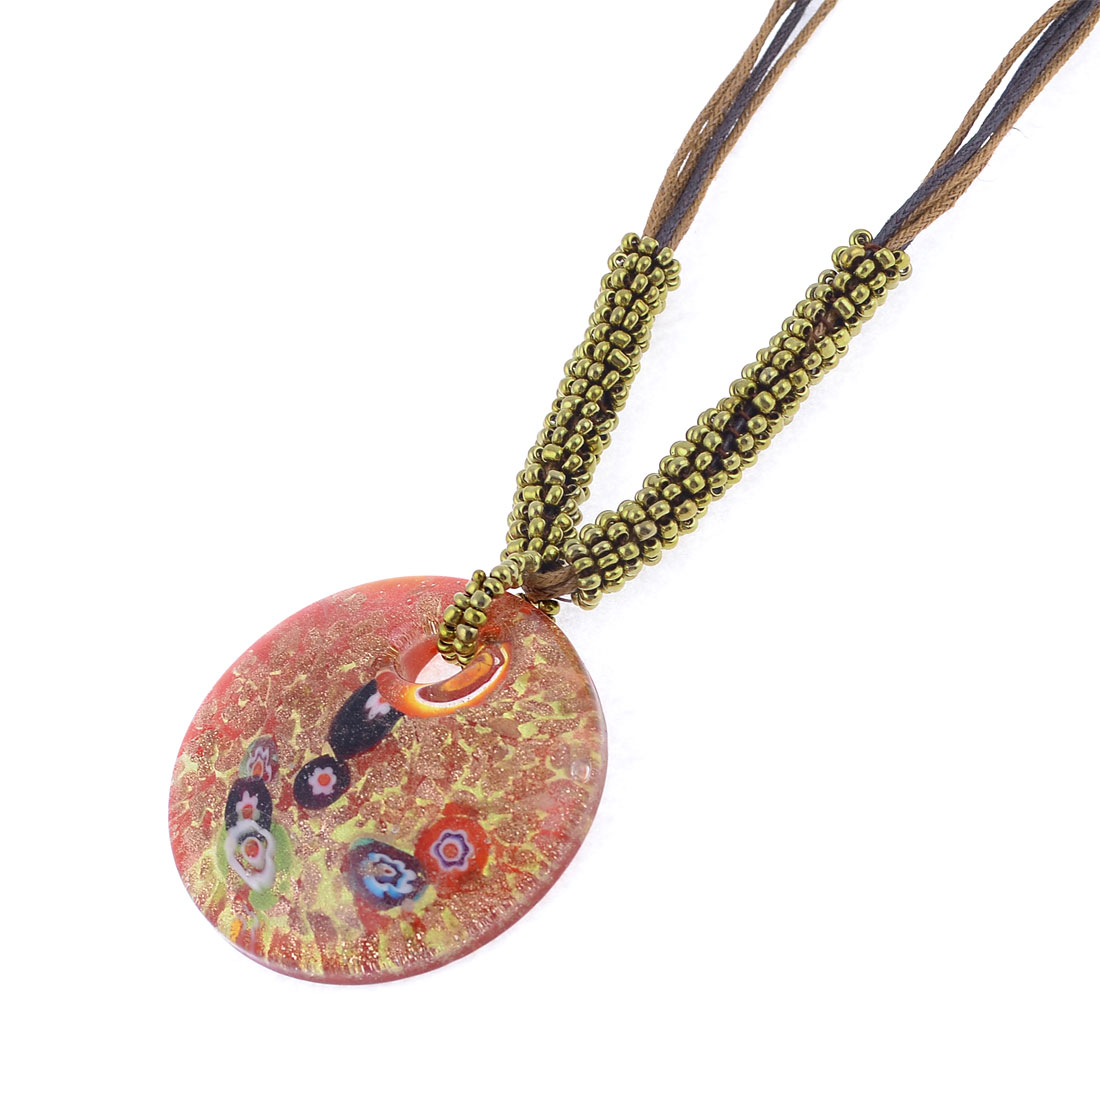 Glitter Powder Gold Tone Round Glass Pendant Adjustable Necklace for Lady Woman